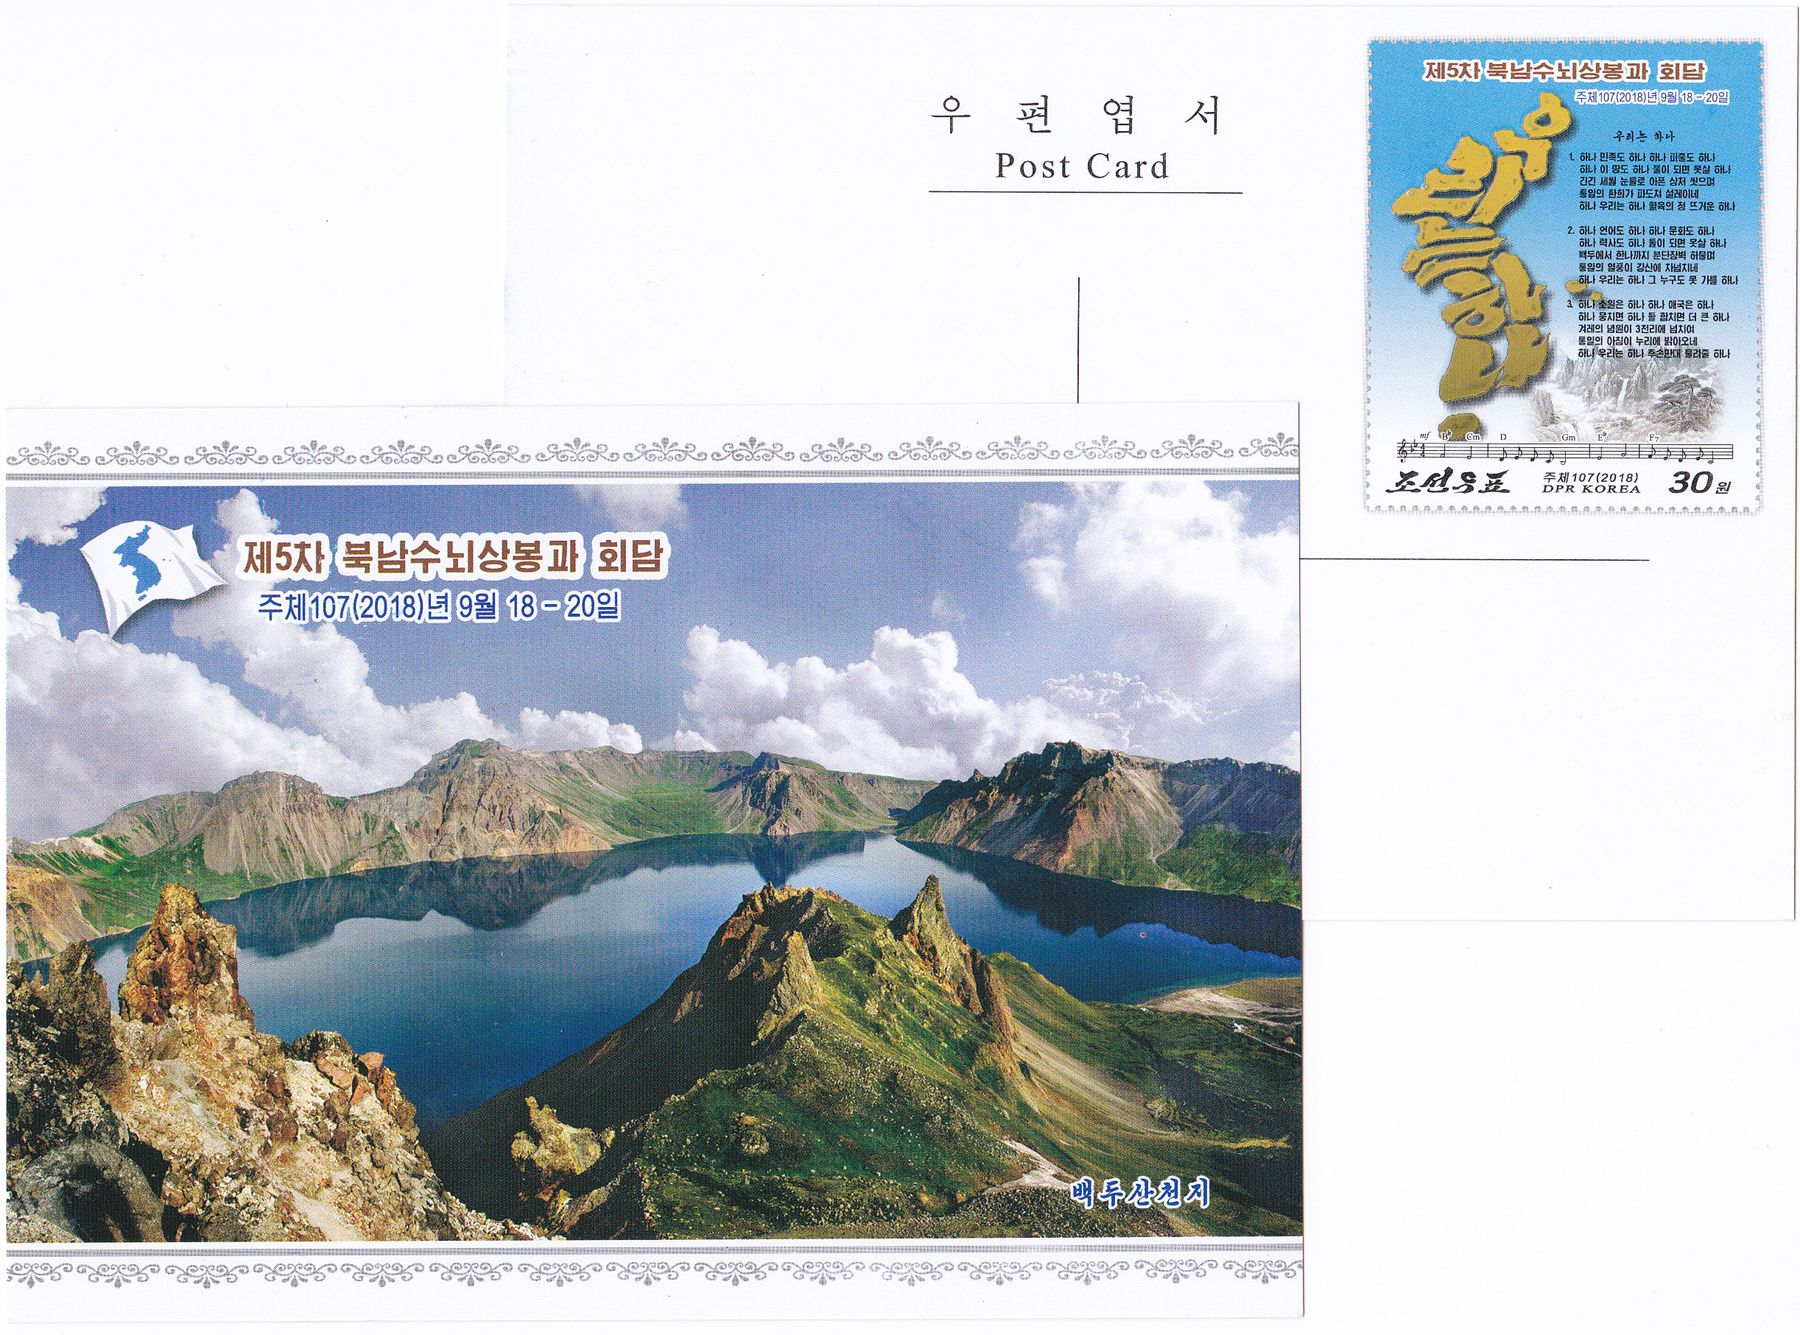 "L9391, Korea ""5th Inter-Korean Leader Summit"", Postal Card, 2018"